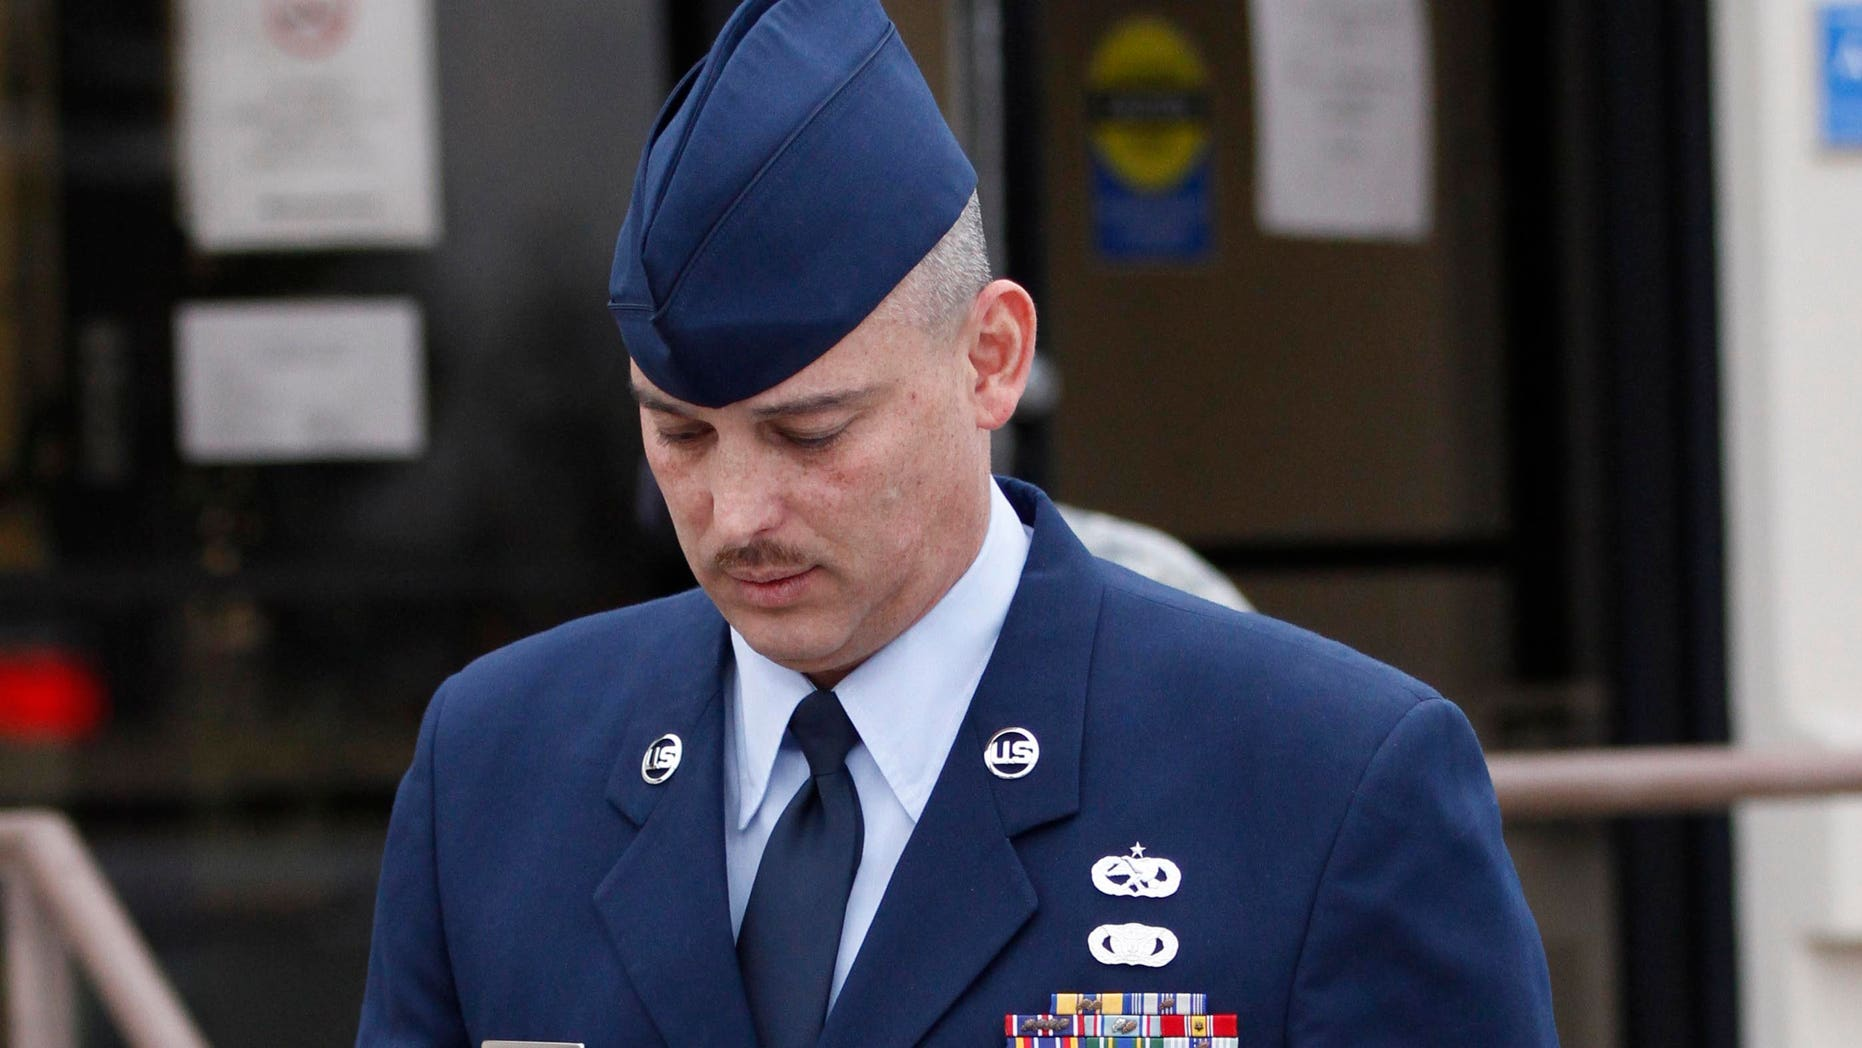 Air Force Sgt. David Gutierrez, right, walks out of the Law Center at McConnell Air Force Base in Wichita, Kan., Wednesday, Jan. 19, 2011 for a lunch recess. The defense rested Wednesday for Gutierrez, who is HIV positive and is accused of exposing multiple sex partners to HIV at swinger parties. (AP Photo/Jeff Tuttle)